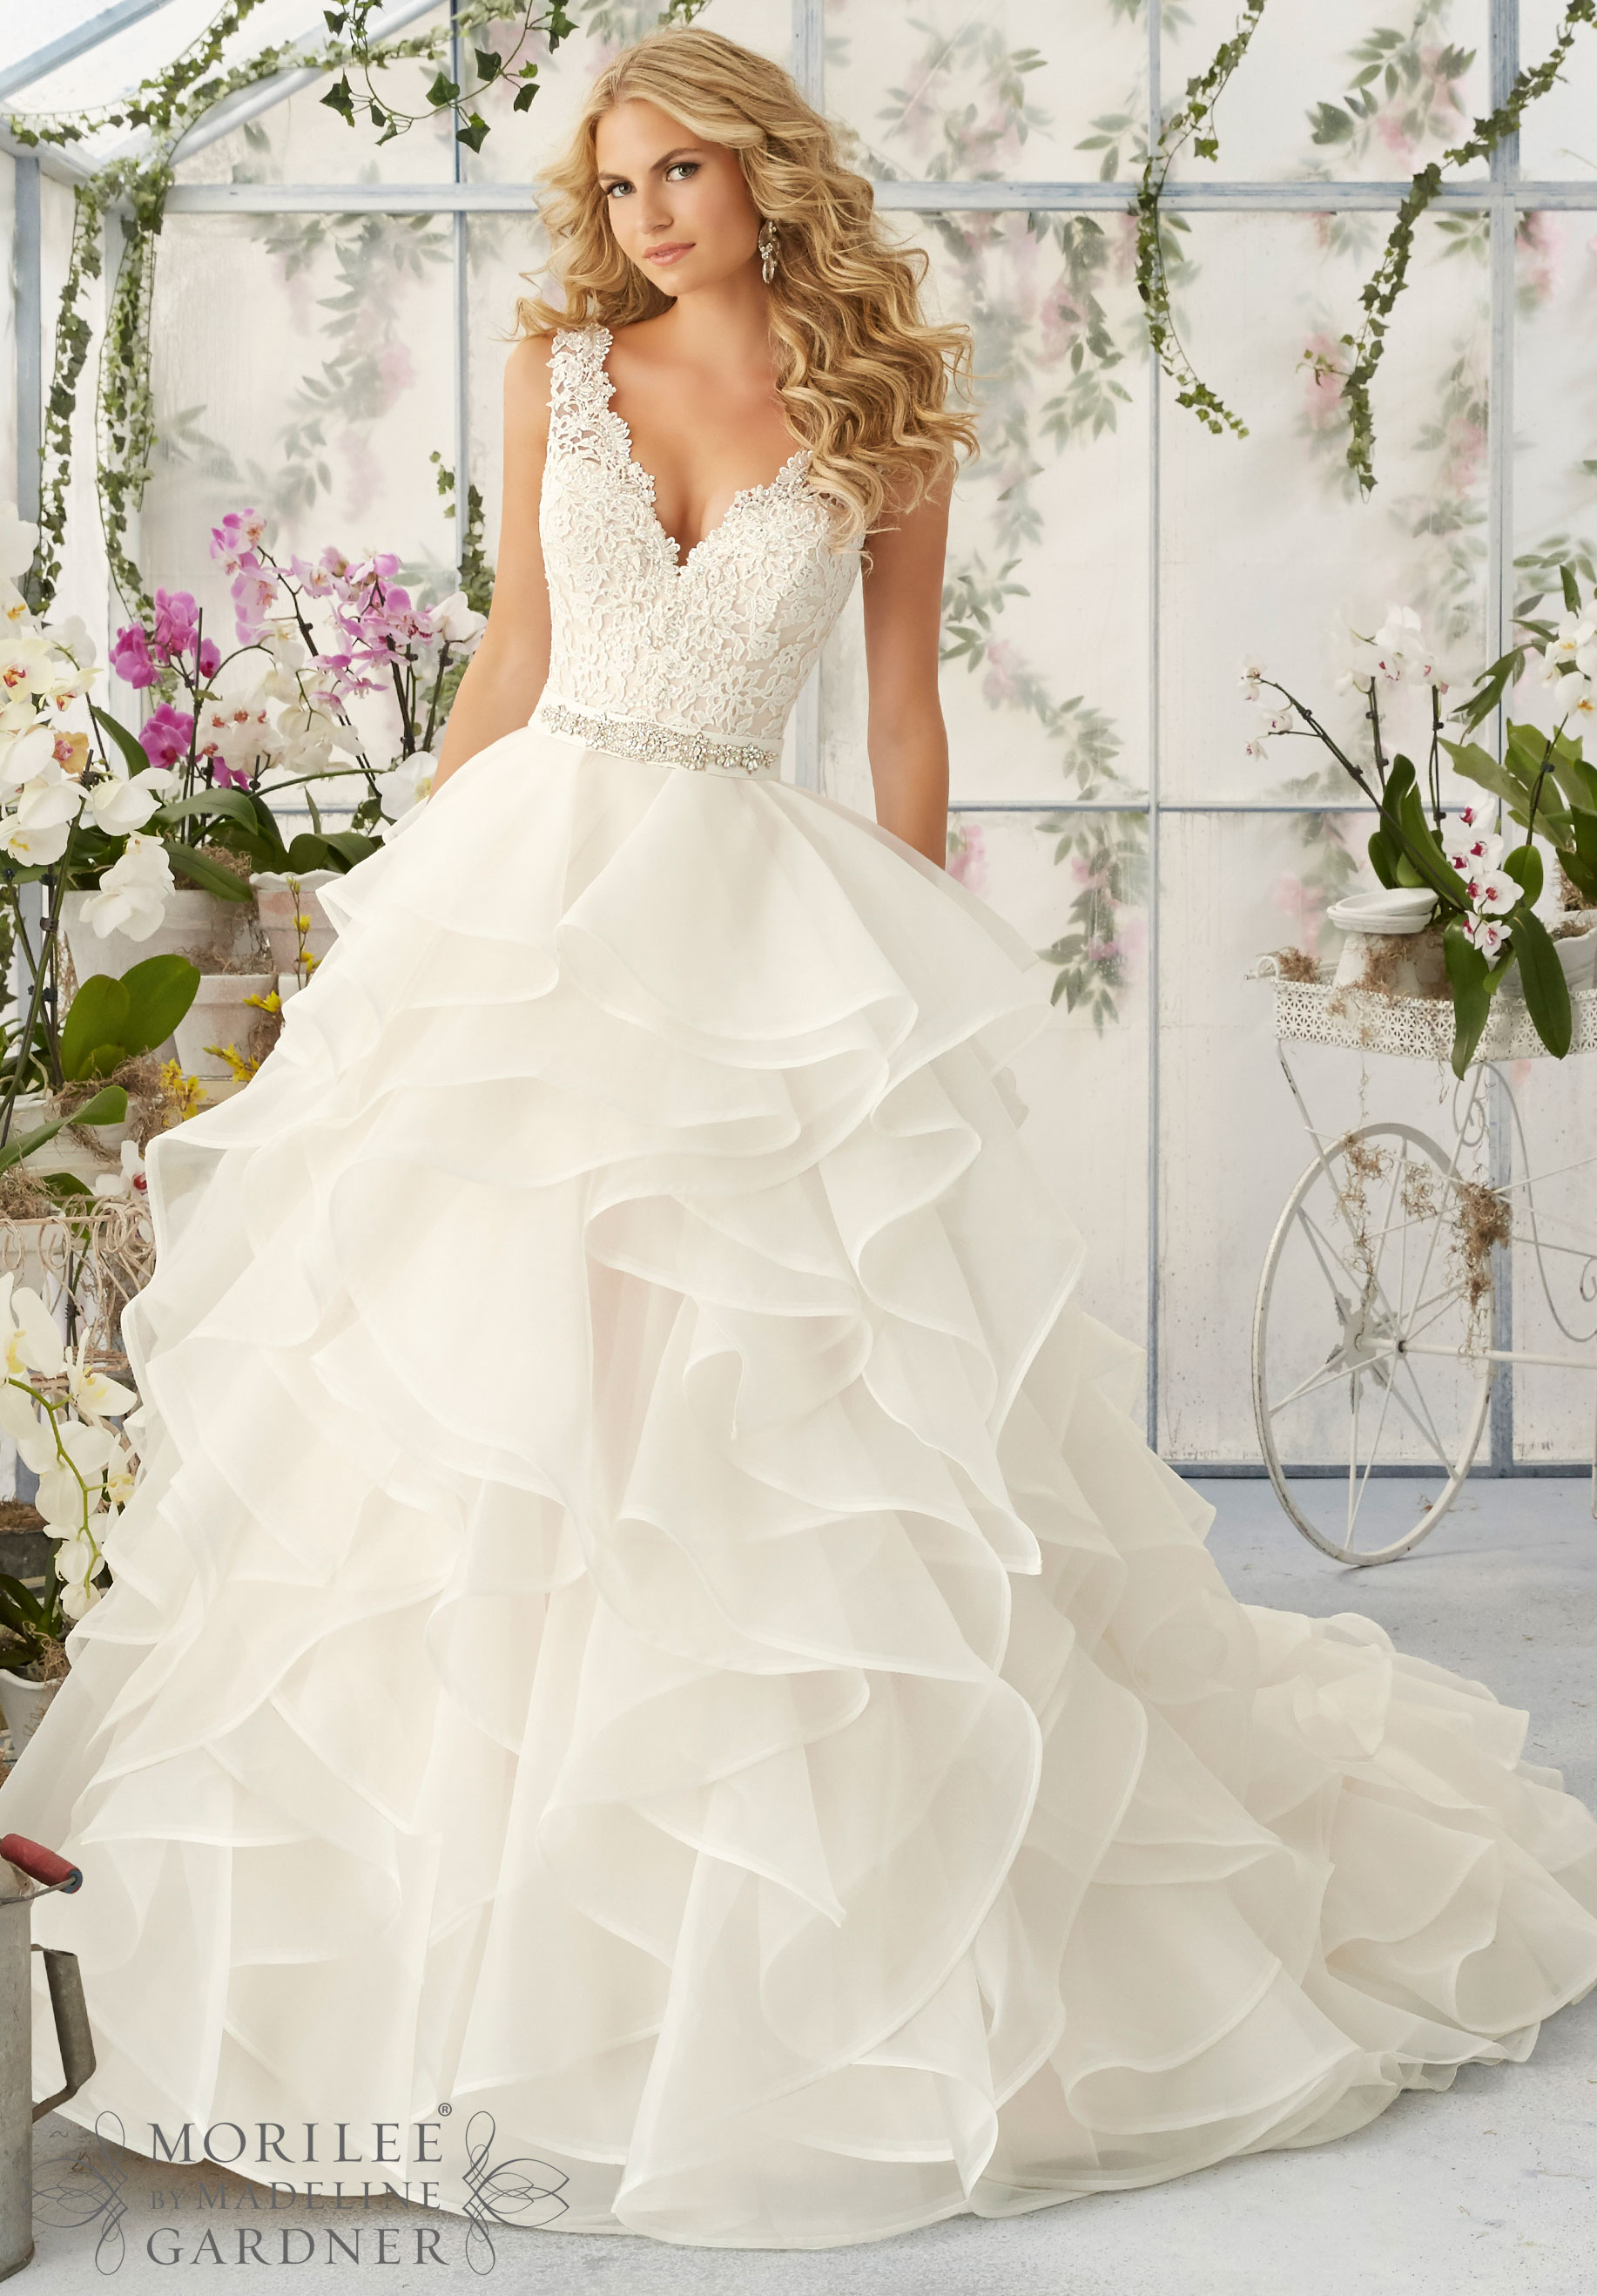 Collections velace bridal wedding dresses bellingham ma for Wedding dress shops in ma